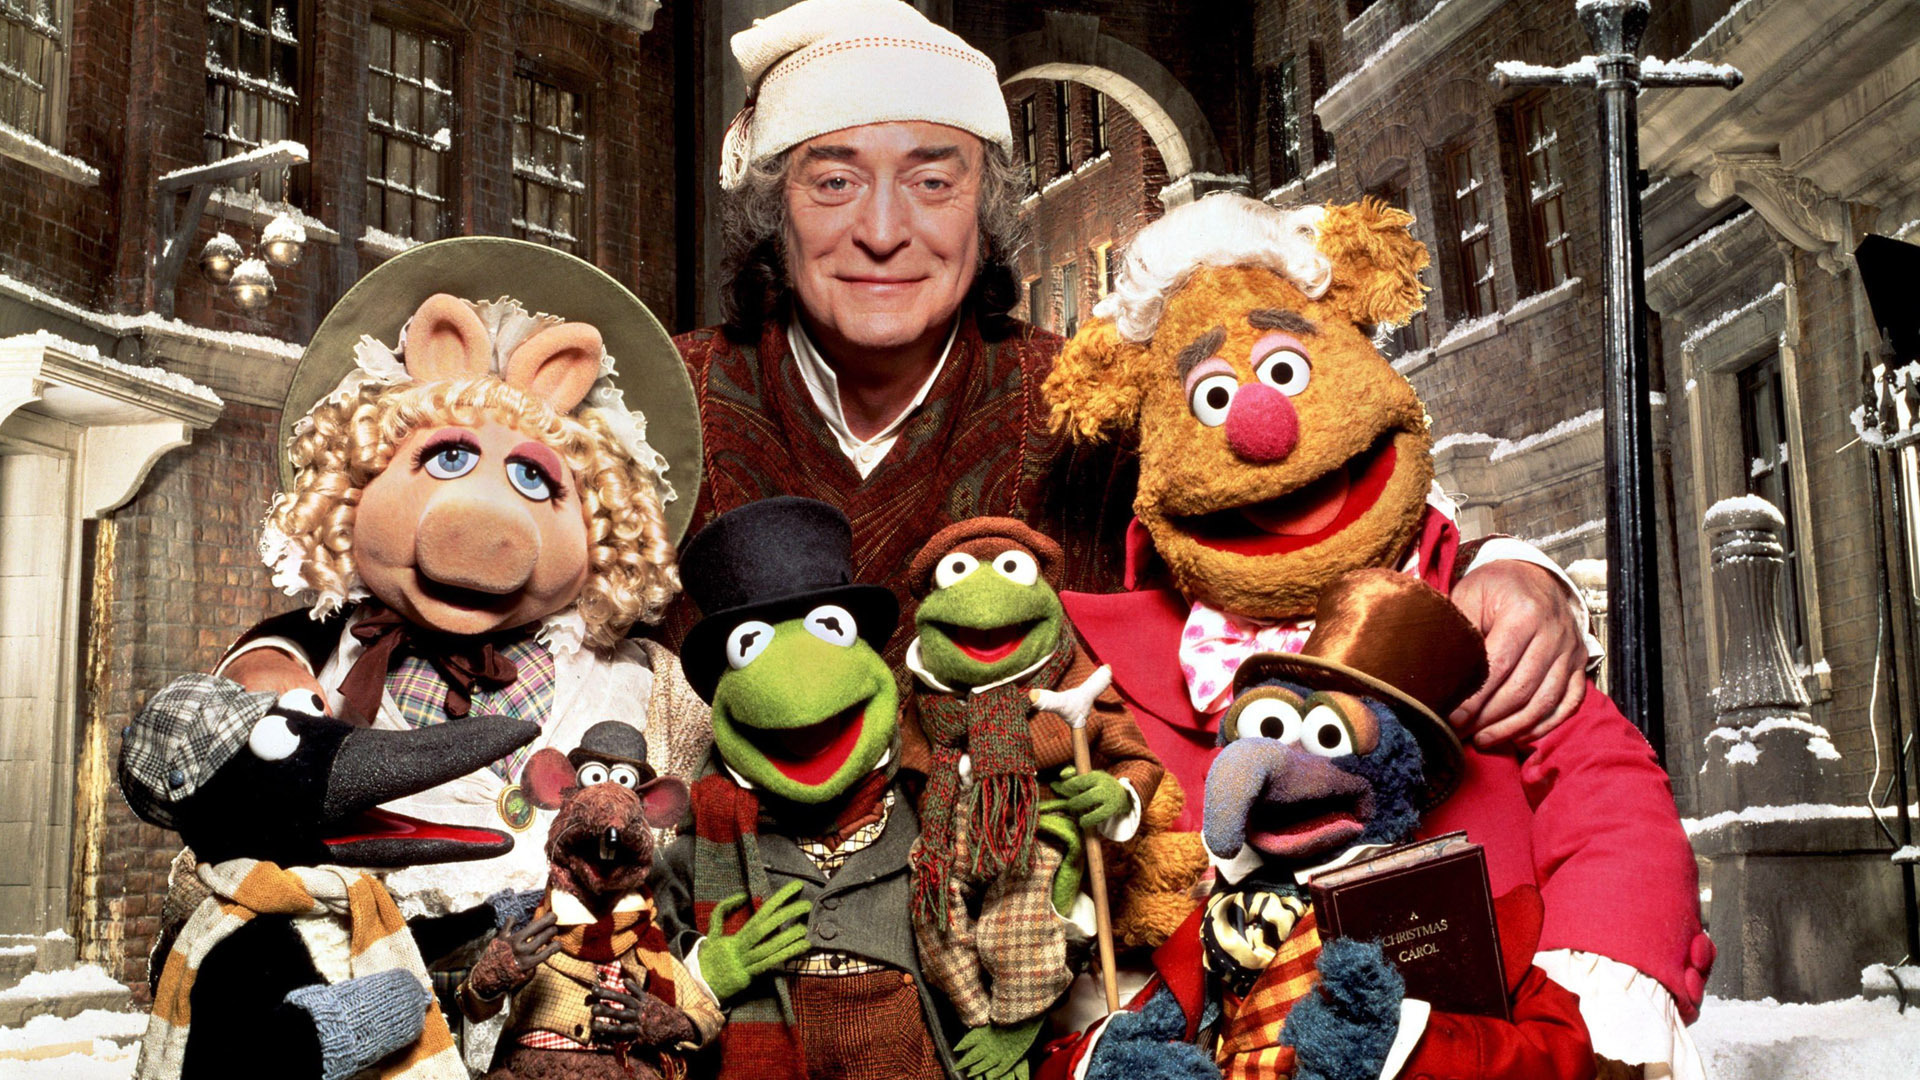 The Muppets Christmas Carol – The Cast and Puppets | Tim's Film ...